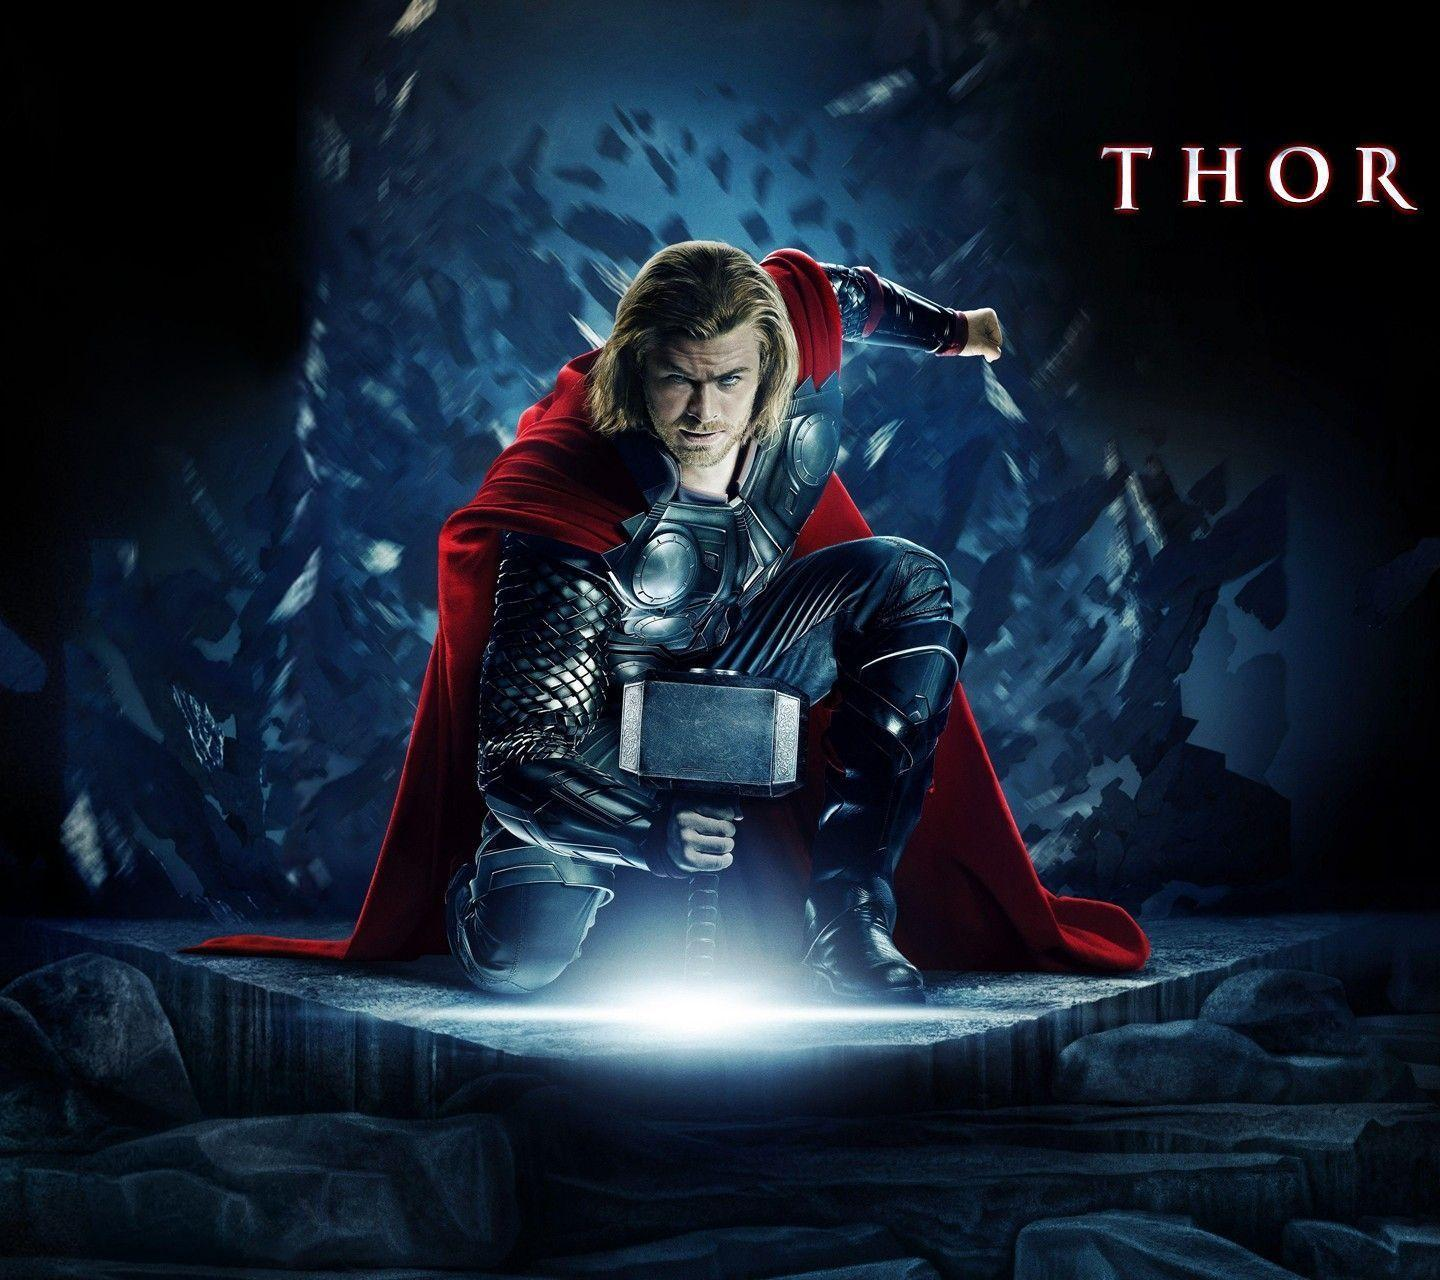 Thor wallpapers hd wallpaper cave - Marvel android wallpaper hd ...